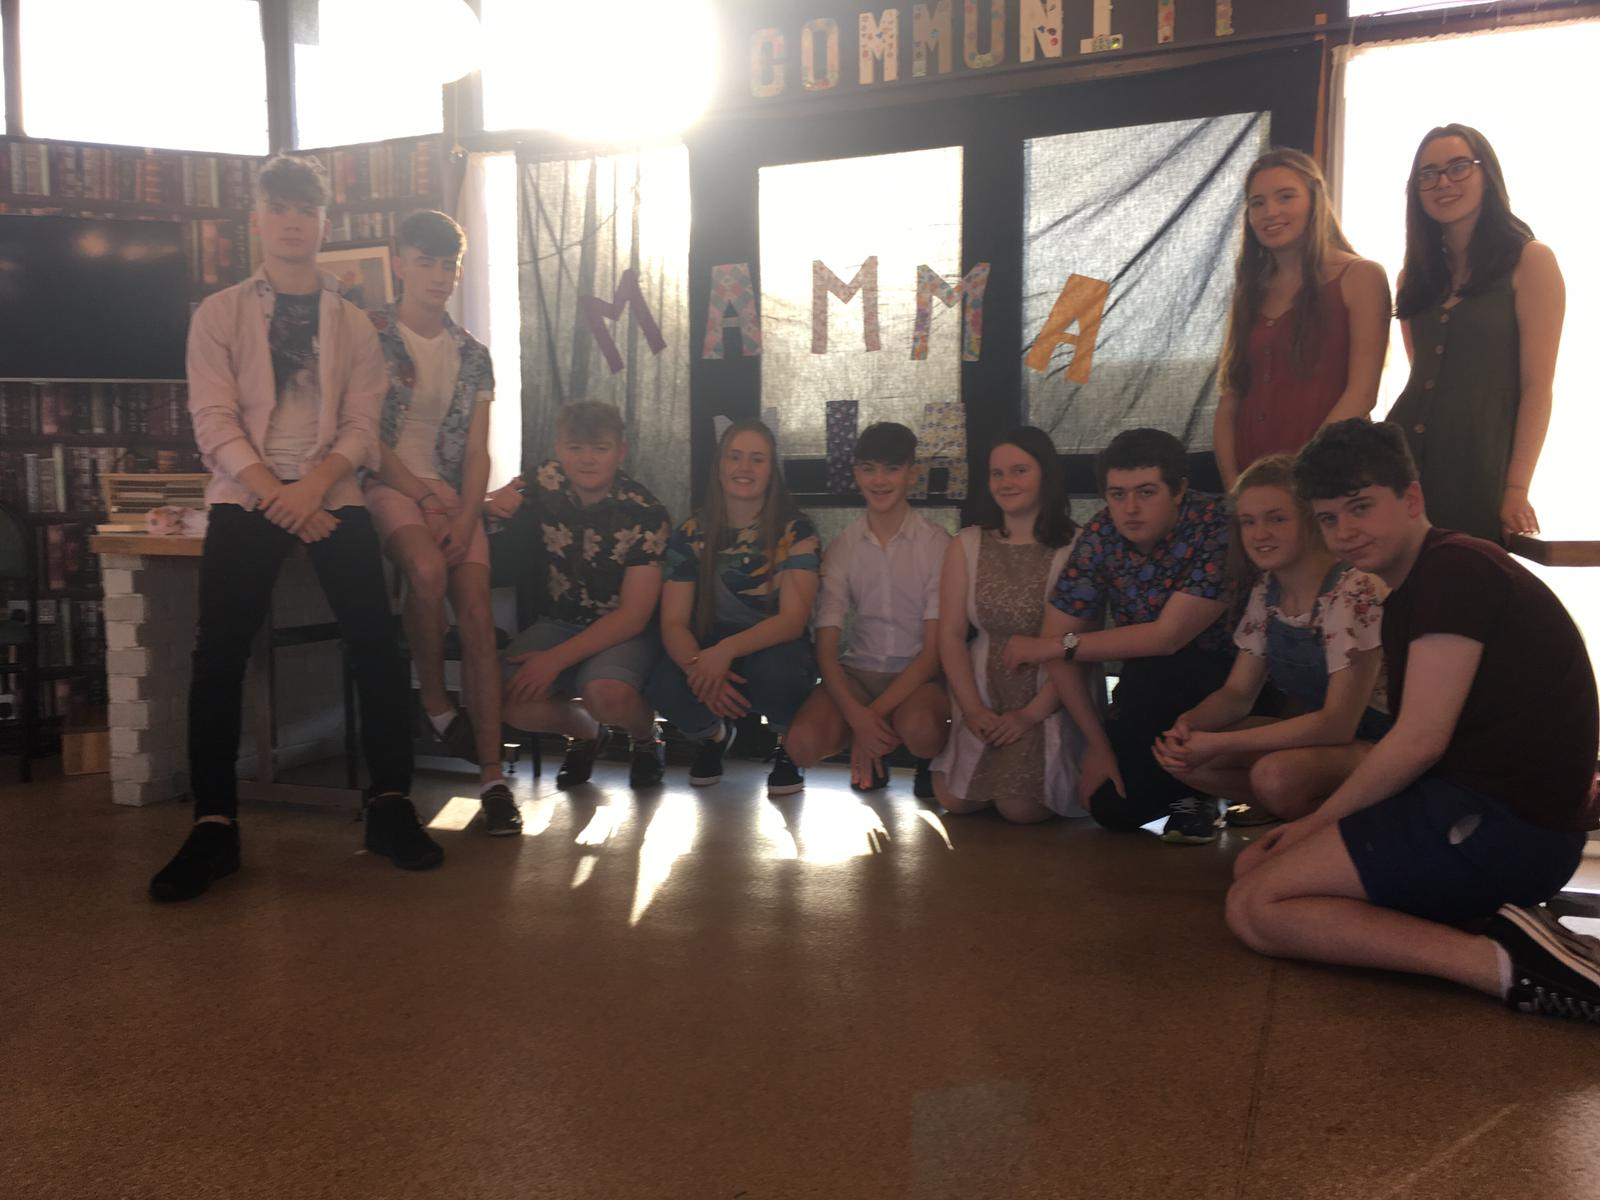 Some of the cast of 'Mamma Mia' performing in the Brothers of Charity Bawnmore